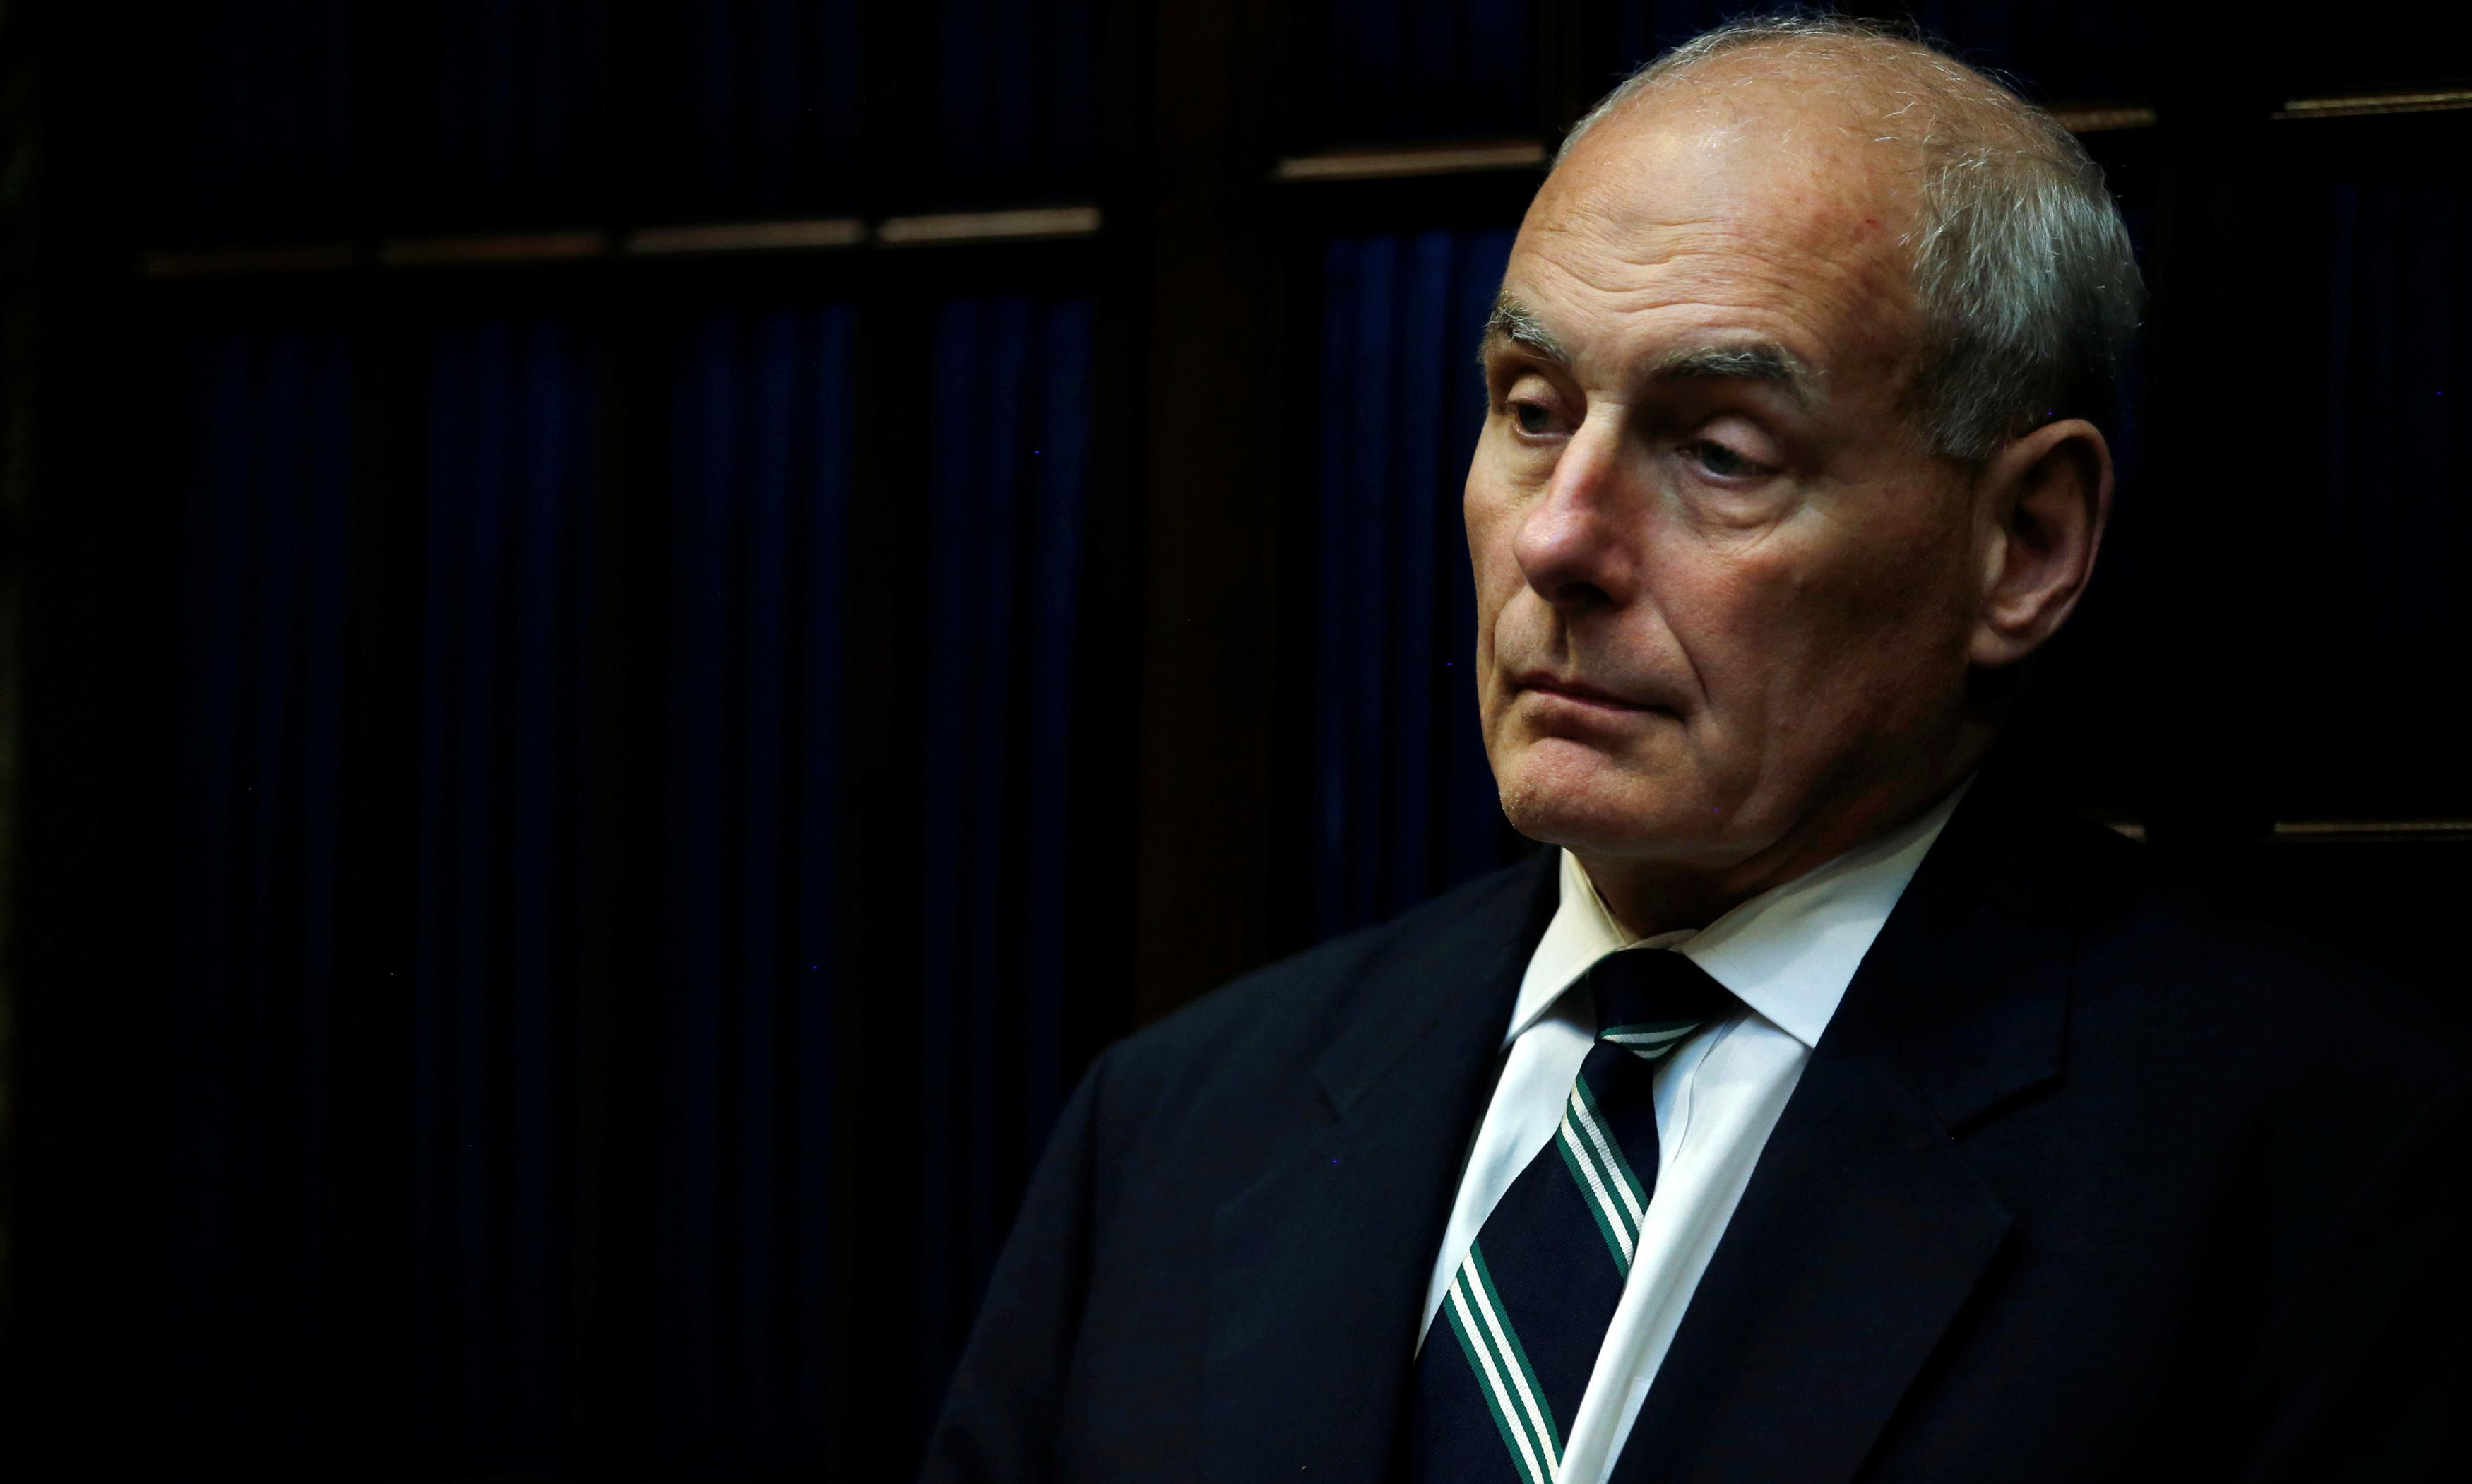 Trump hits out at former chief of staff John Kelly's warning about impeachment